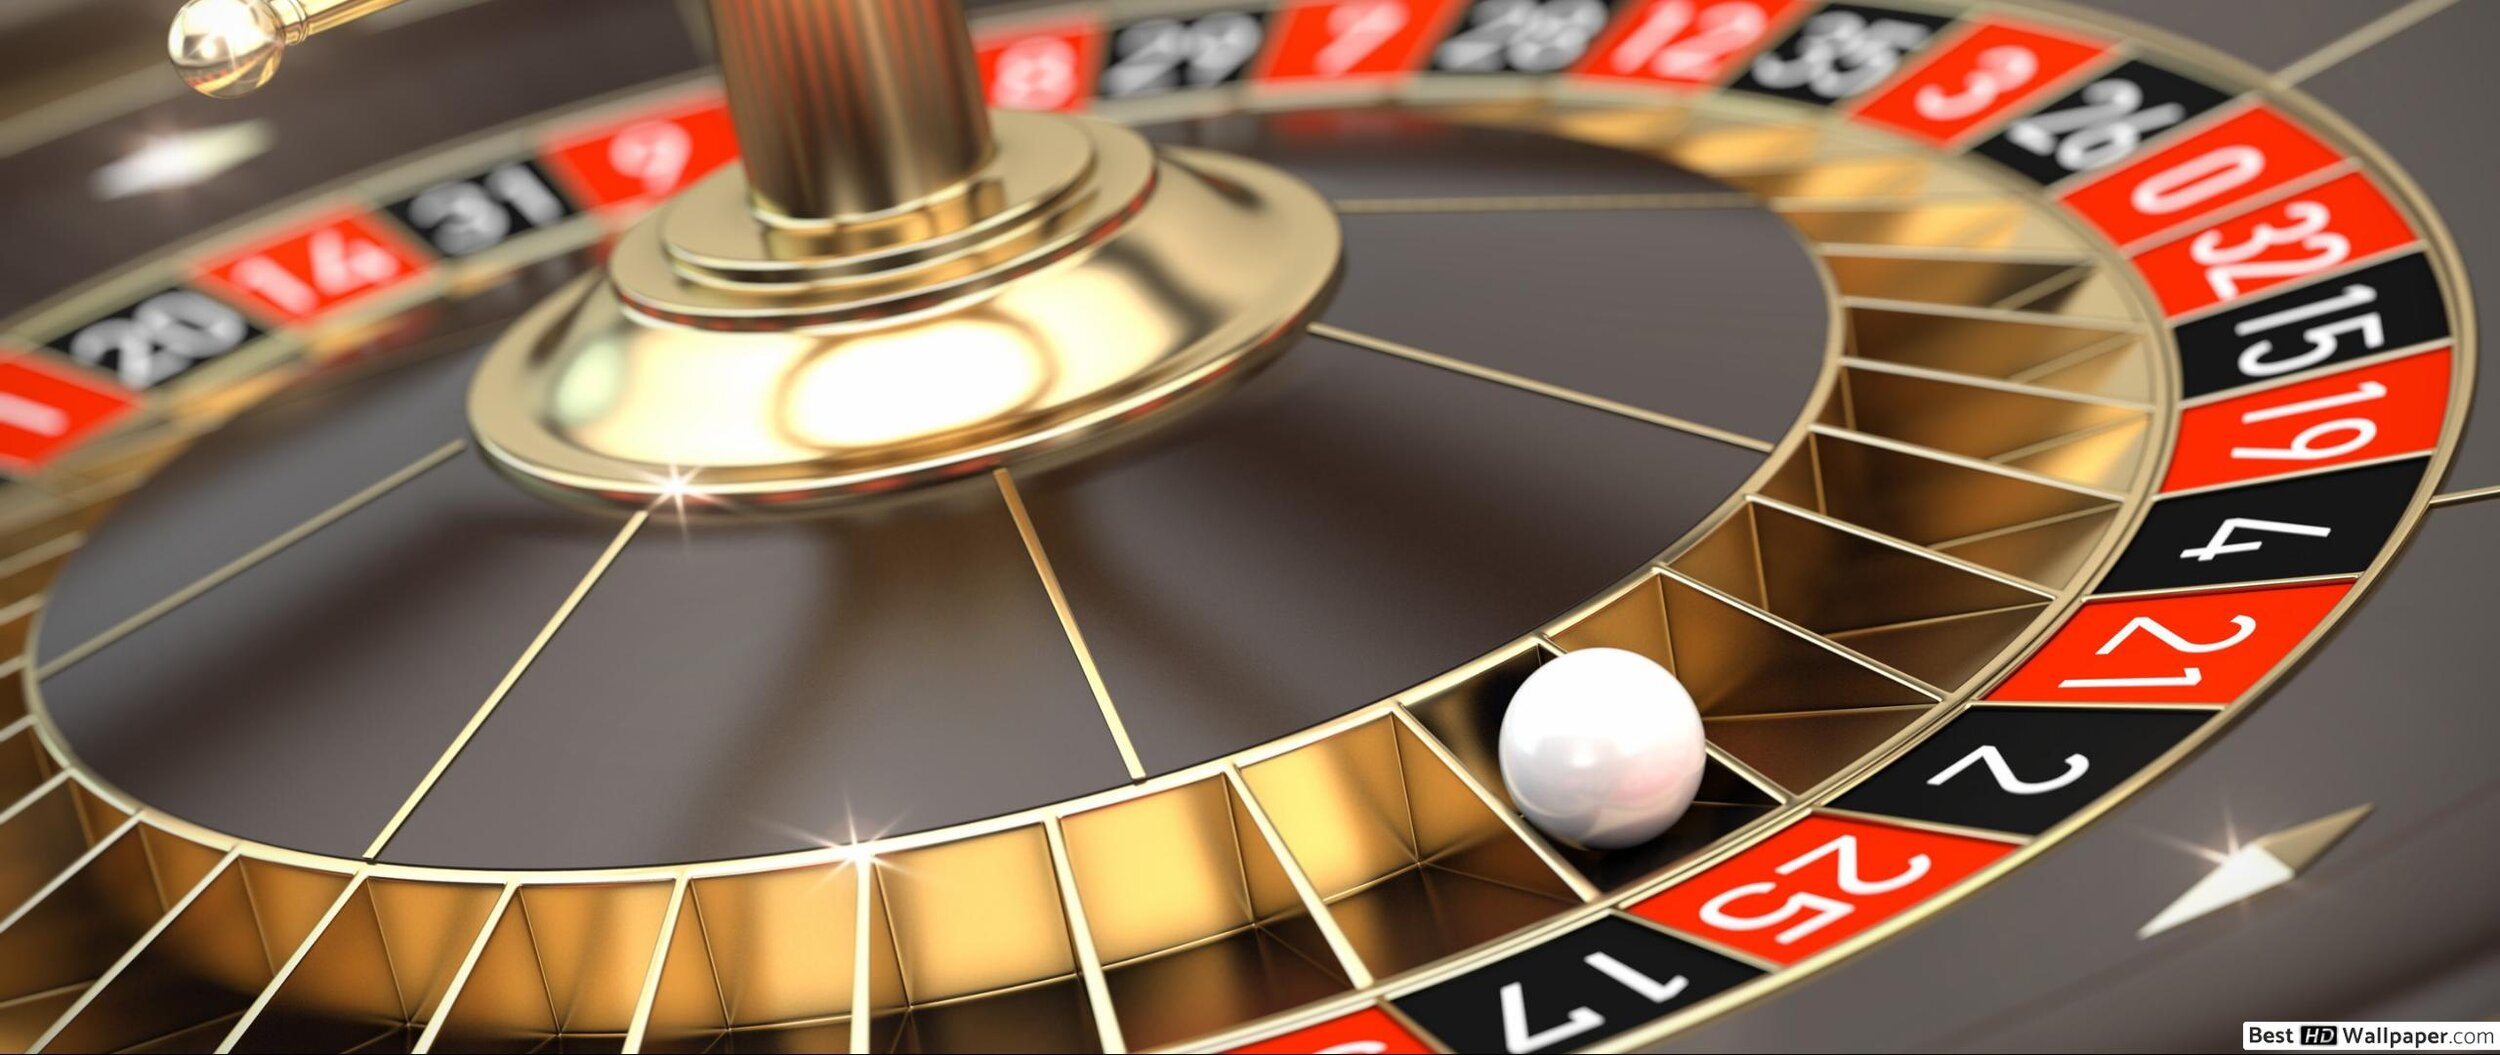 Roulette Strategies for earning money